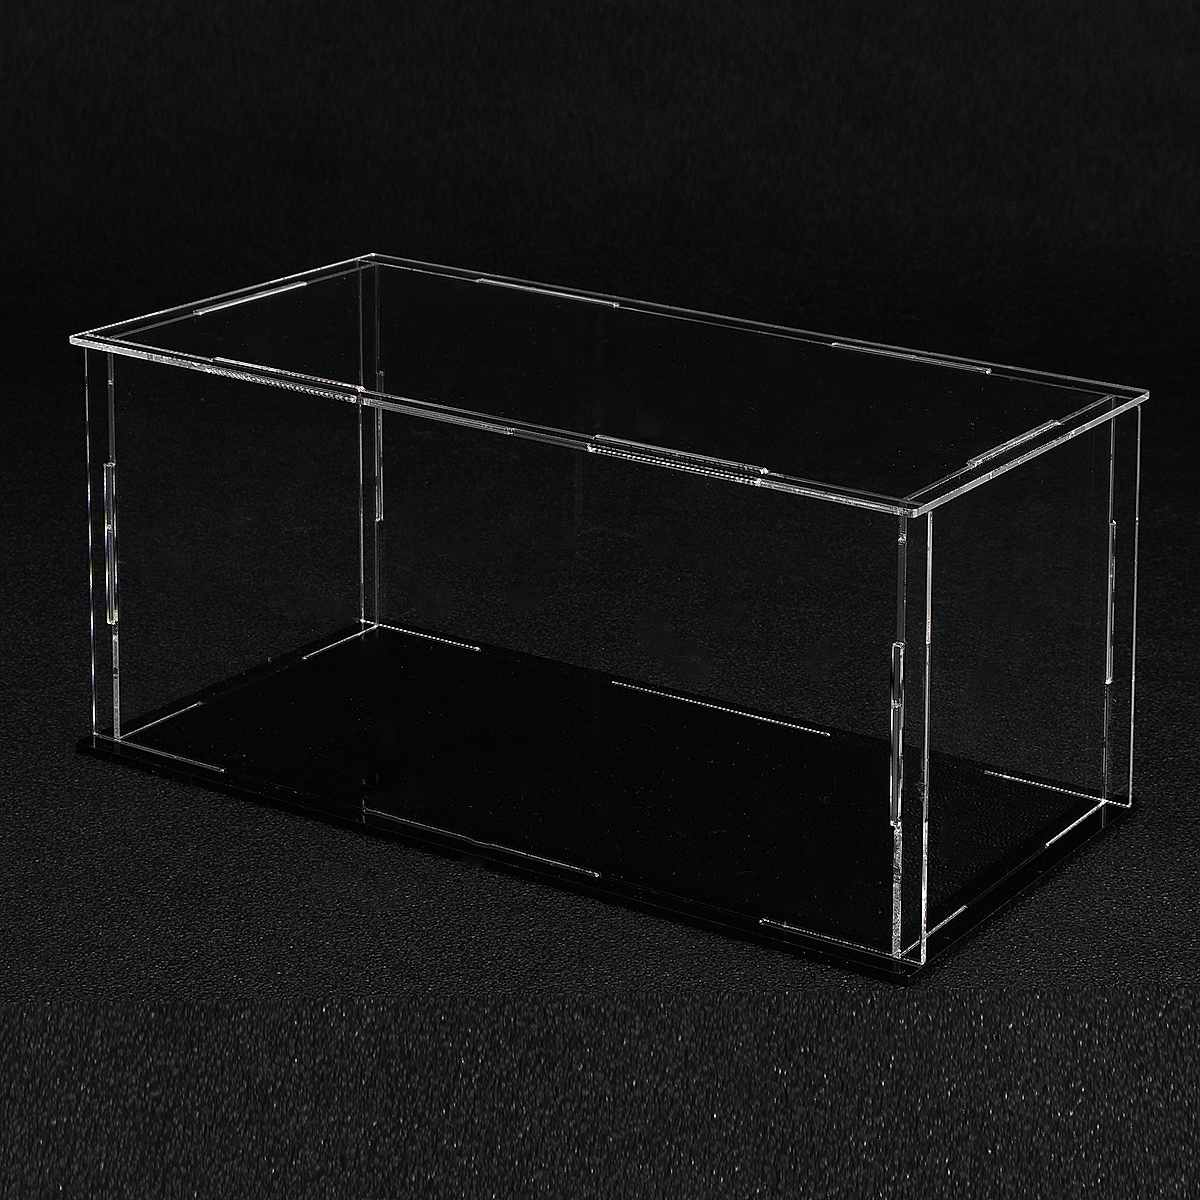 Transparent  Acrylic Assembly Display Dustproof Case Tray Storage Show Box 20X10X10CM